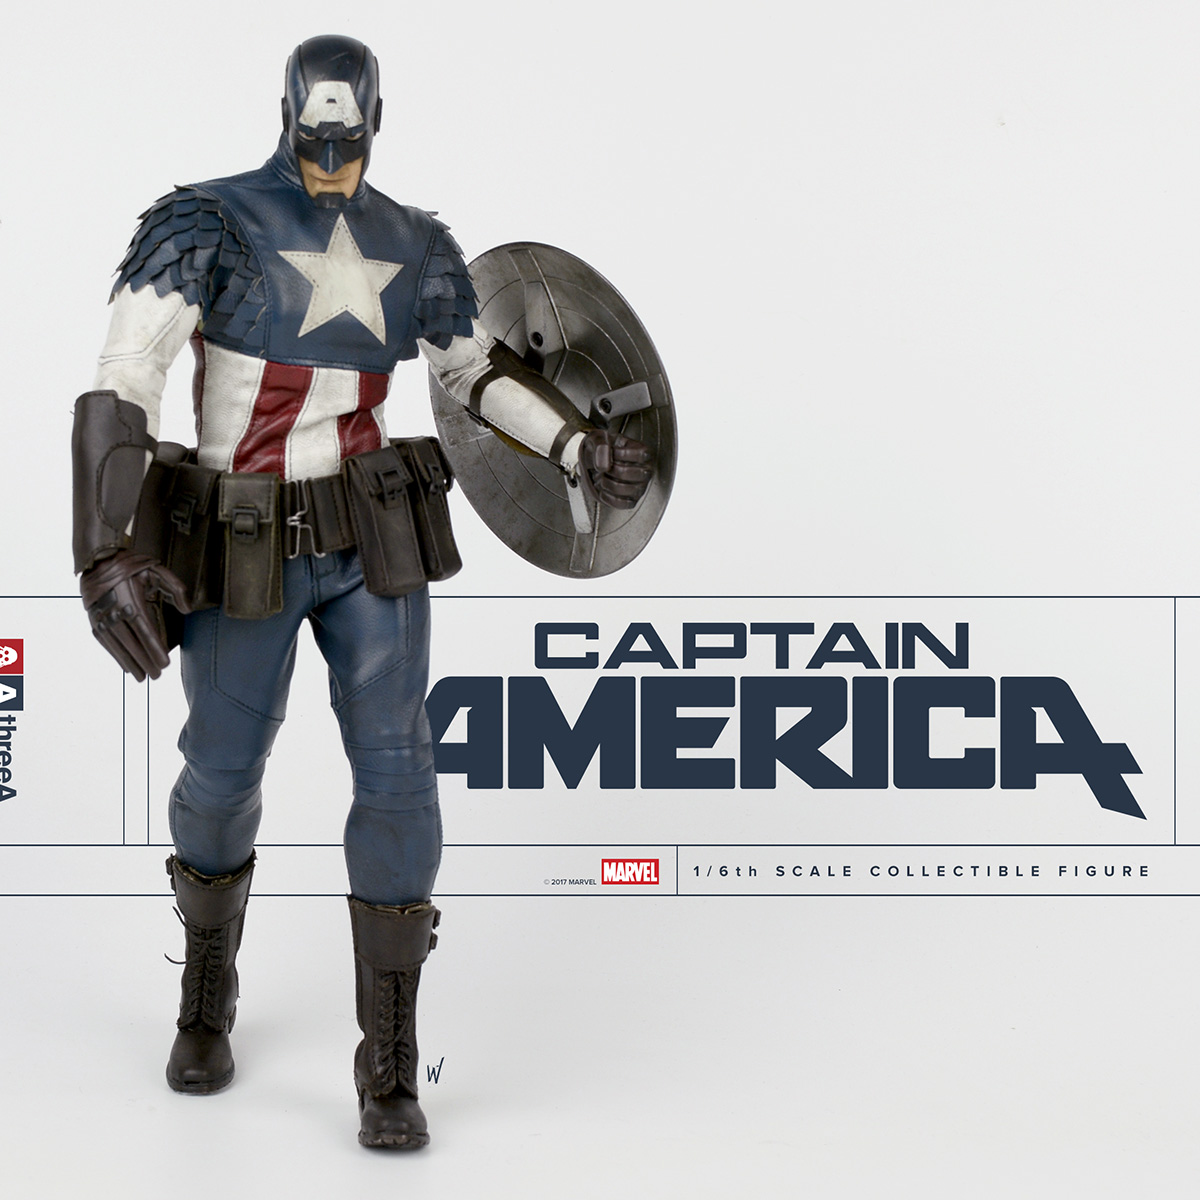 3A_Marvel_CaptainAmerica_Square_Ad_001brev.jpg